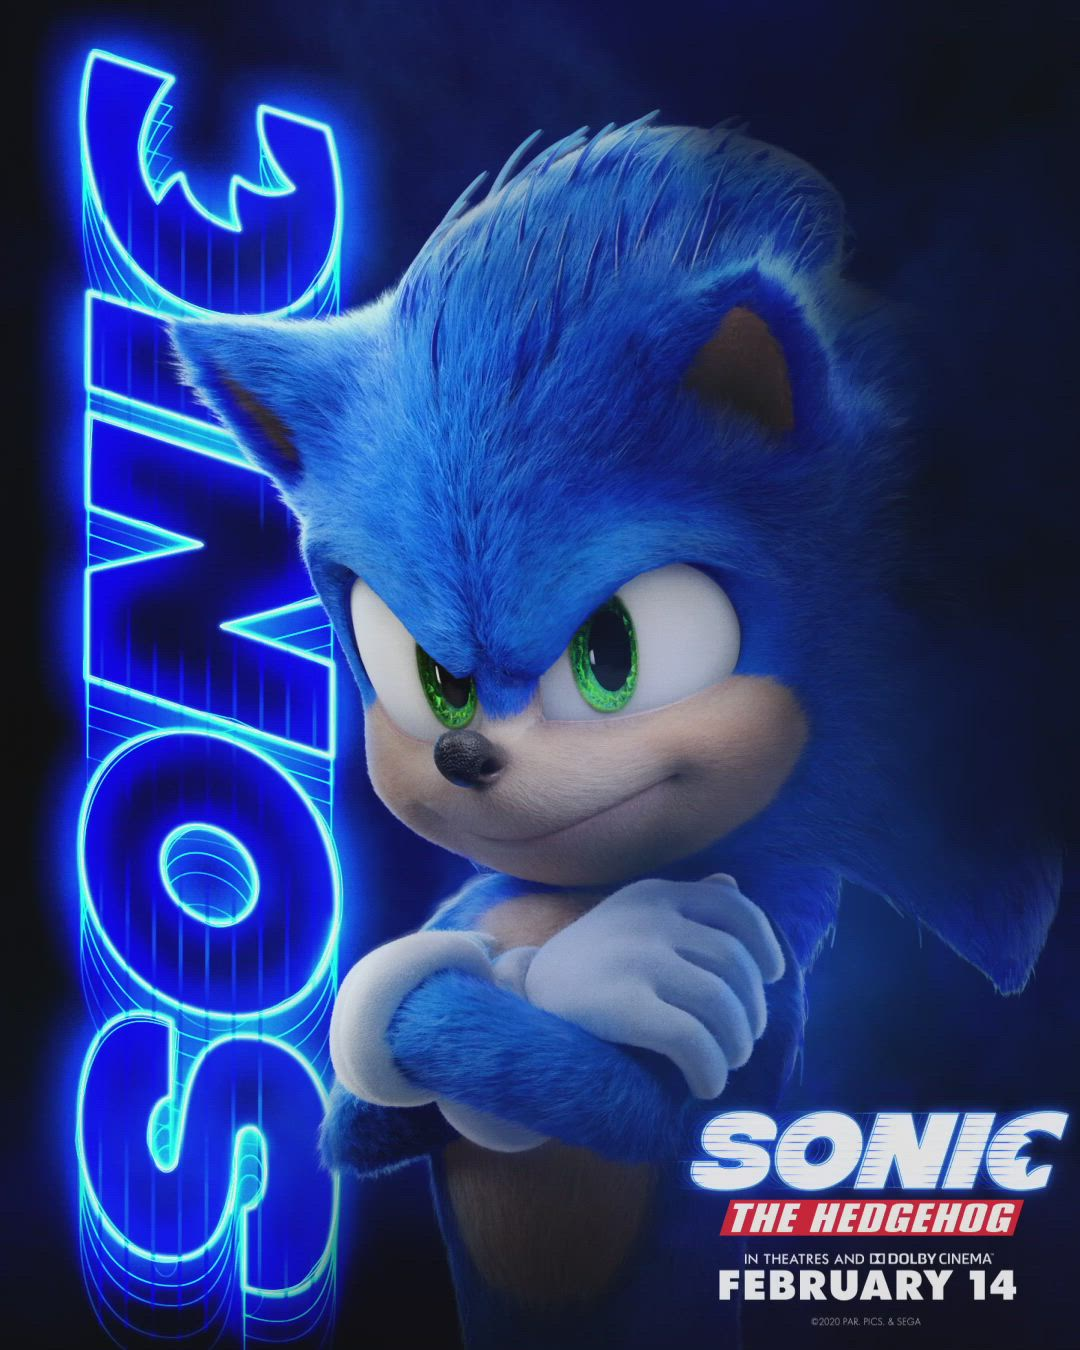 Sonic The Hedgehog In Theatres Feb 14 Video In 2020 Sonic The Hedgehog Sonic Hedgehog Movie